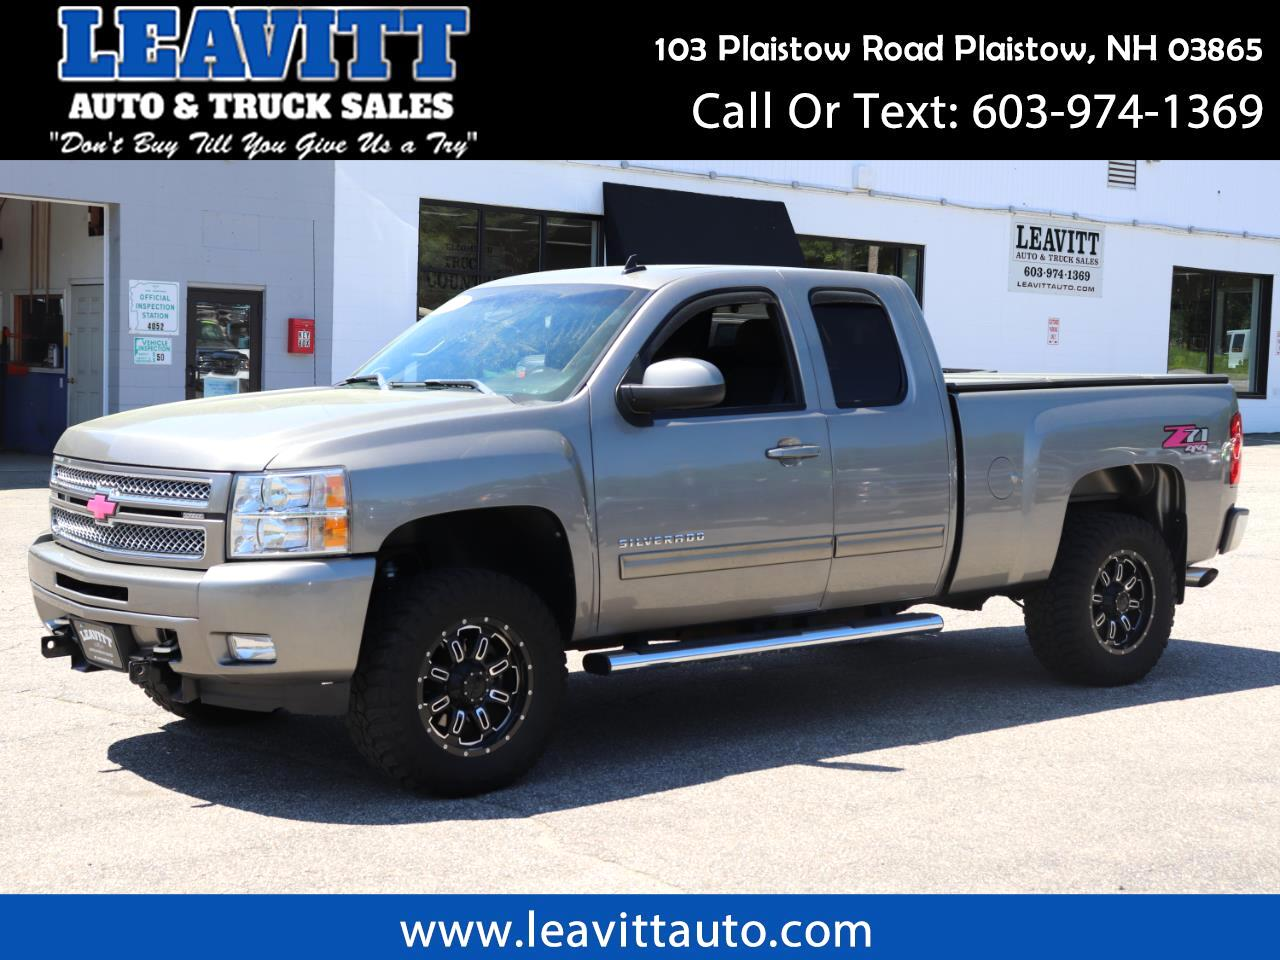 2012 Chevrolet Silverado 1500 LT 75K MILES EXCELLENT CONDITION!!